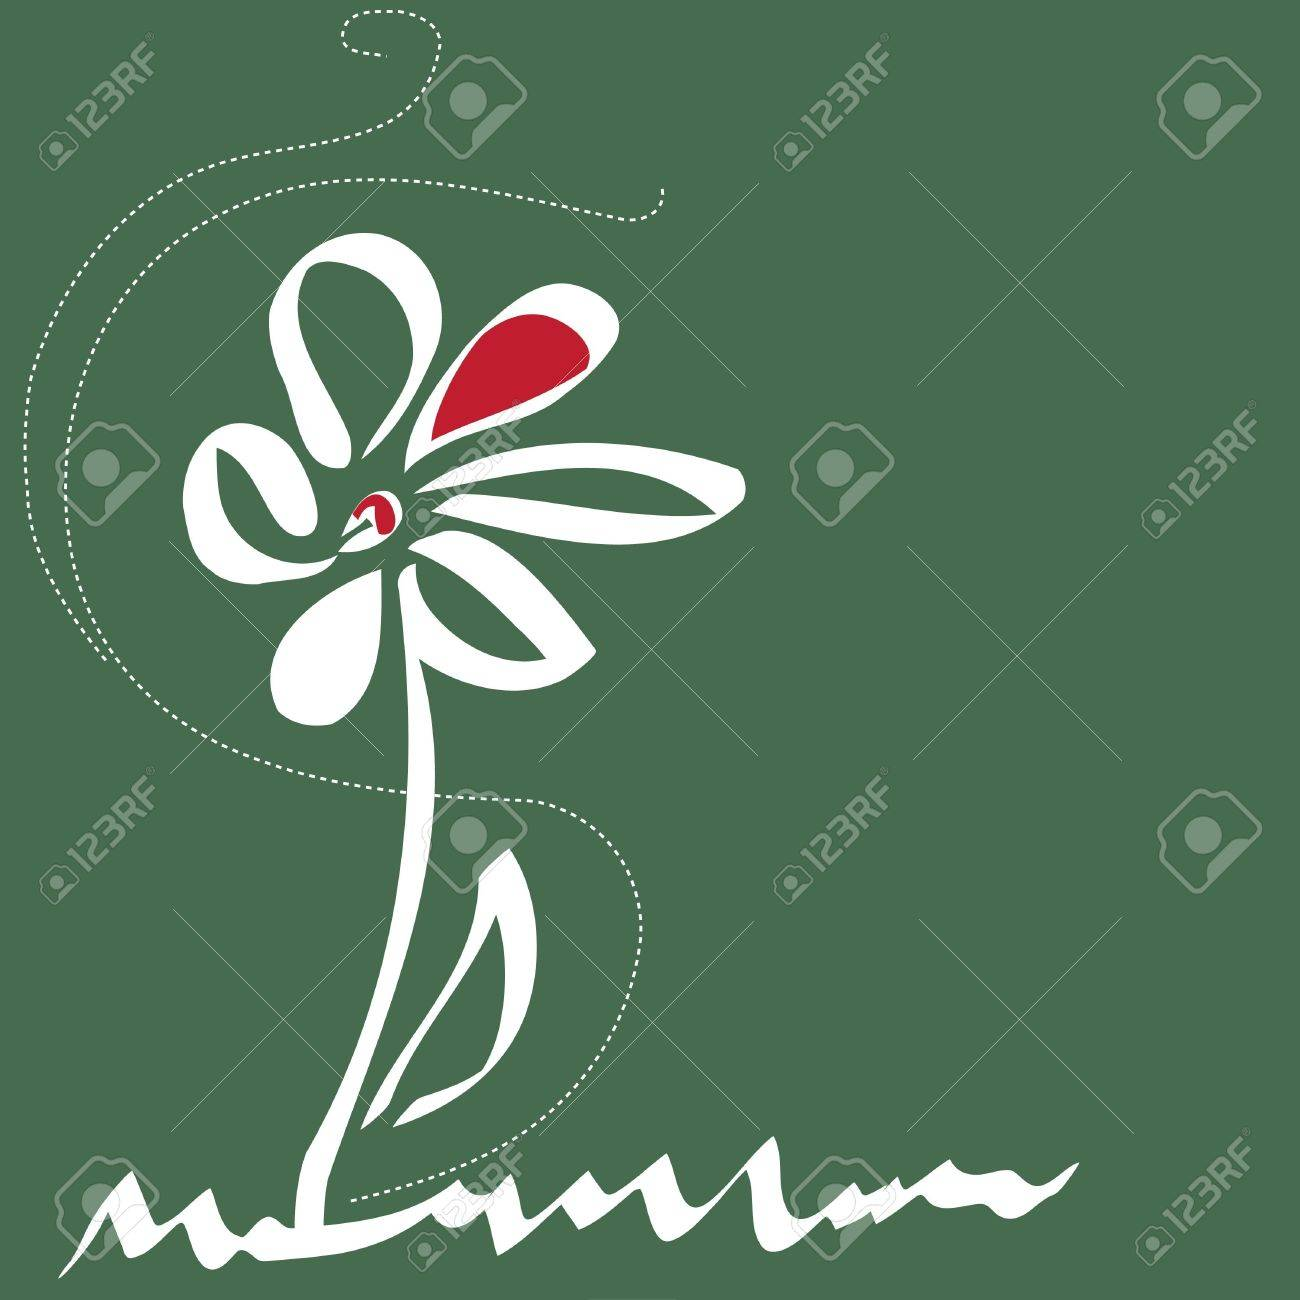 Stylish flower  backgrounds.Logo. Stock Vector - 14445980